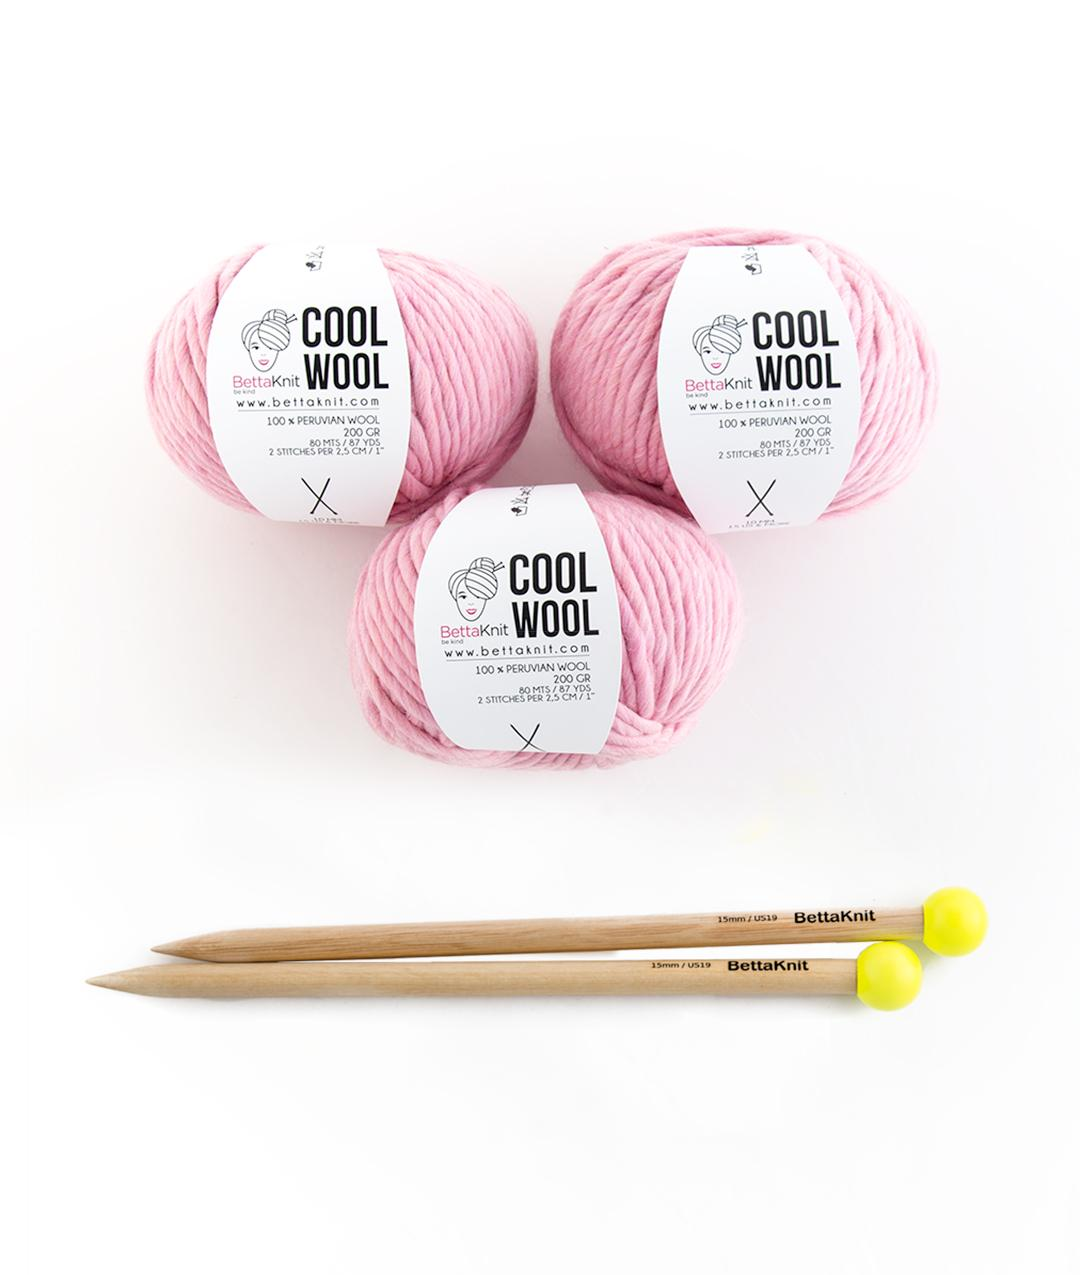 Yarn boxes with Needles  - Pack of Yarn - Cool Wool Box - Medium - 1